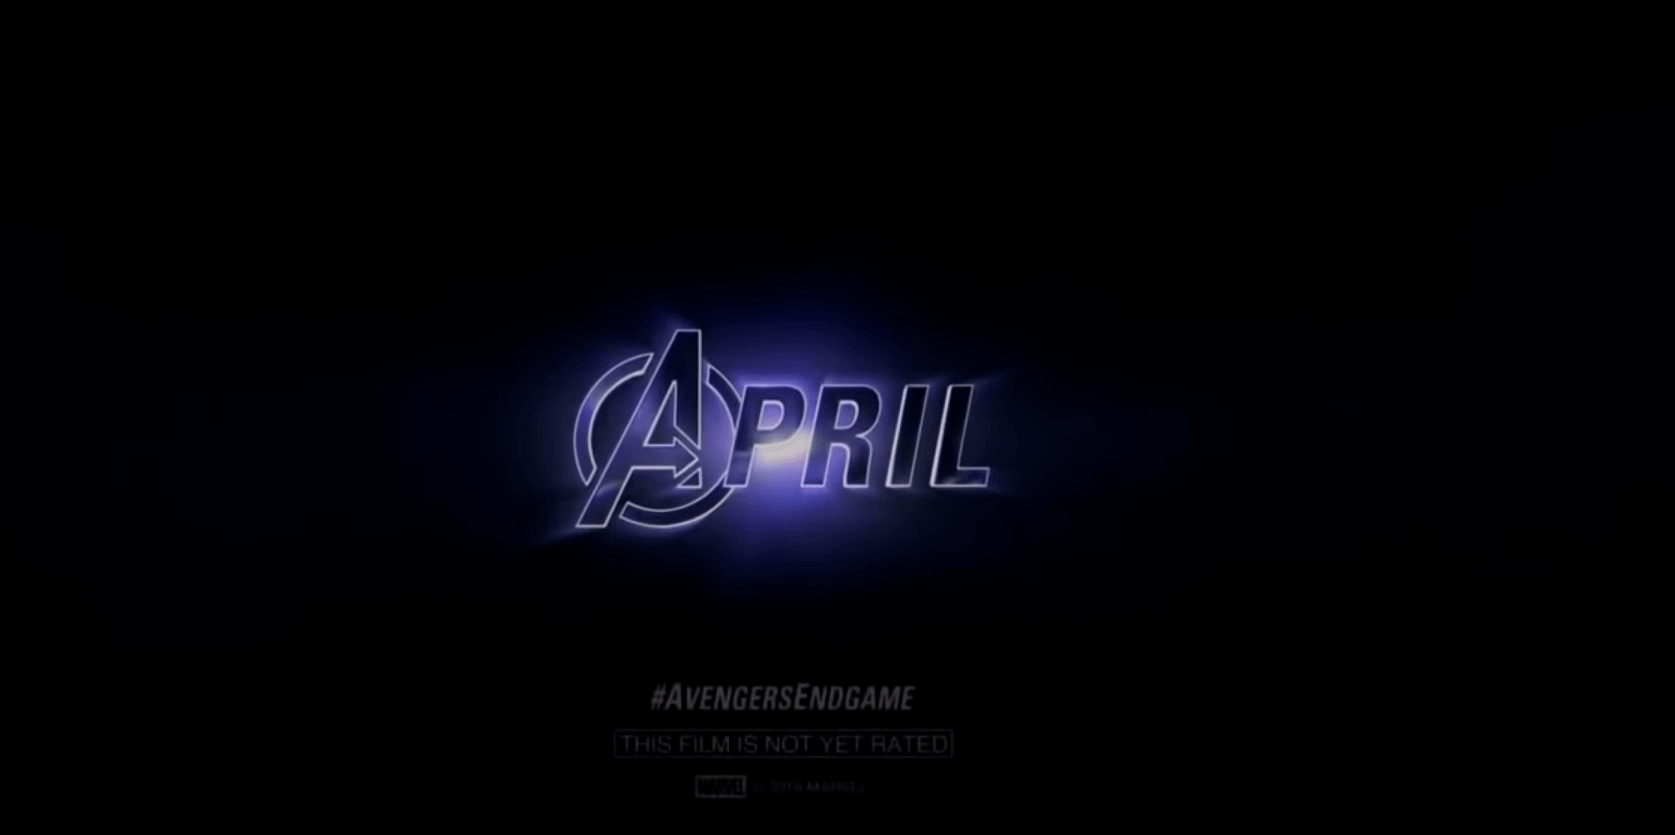 avengers endgame official super bowl tv spot new footage breakdown avengers endgame official super bowl tv